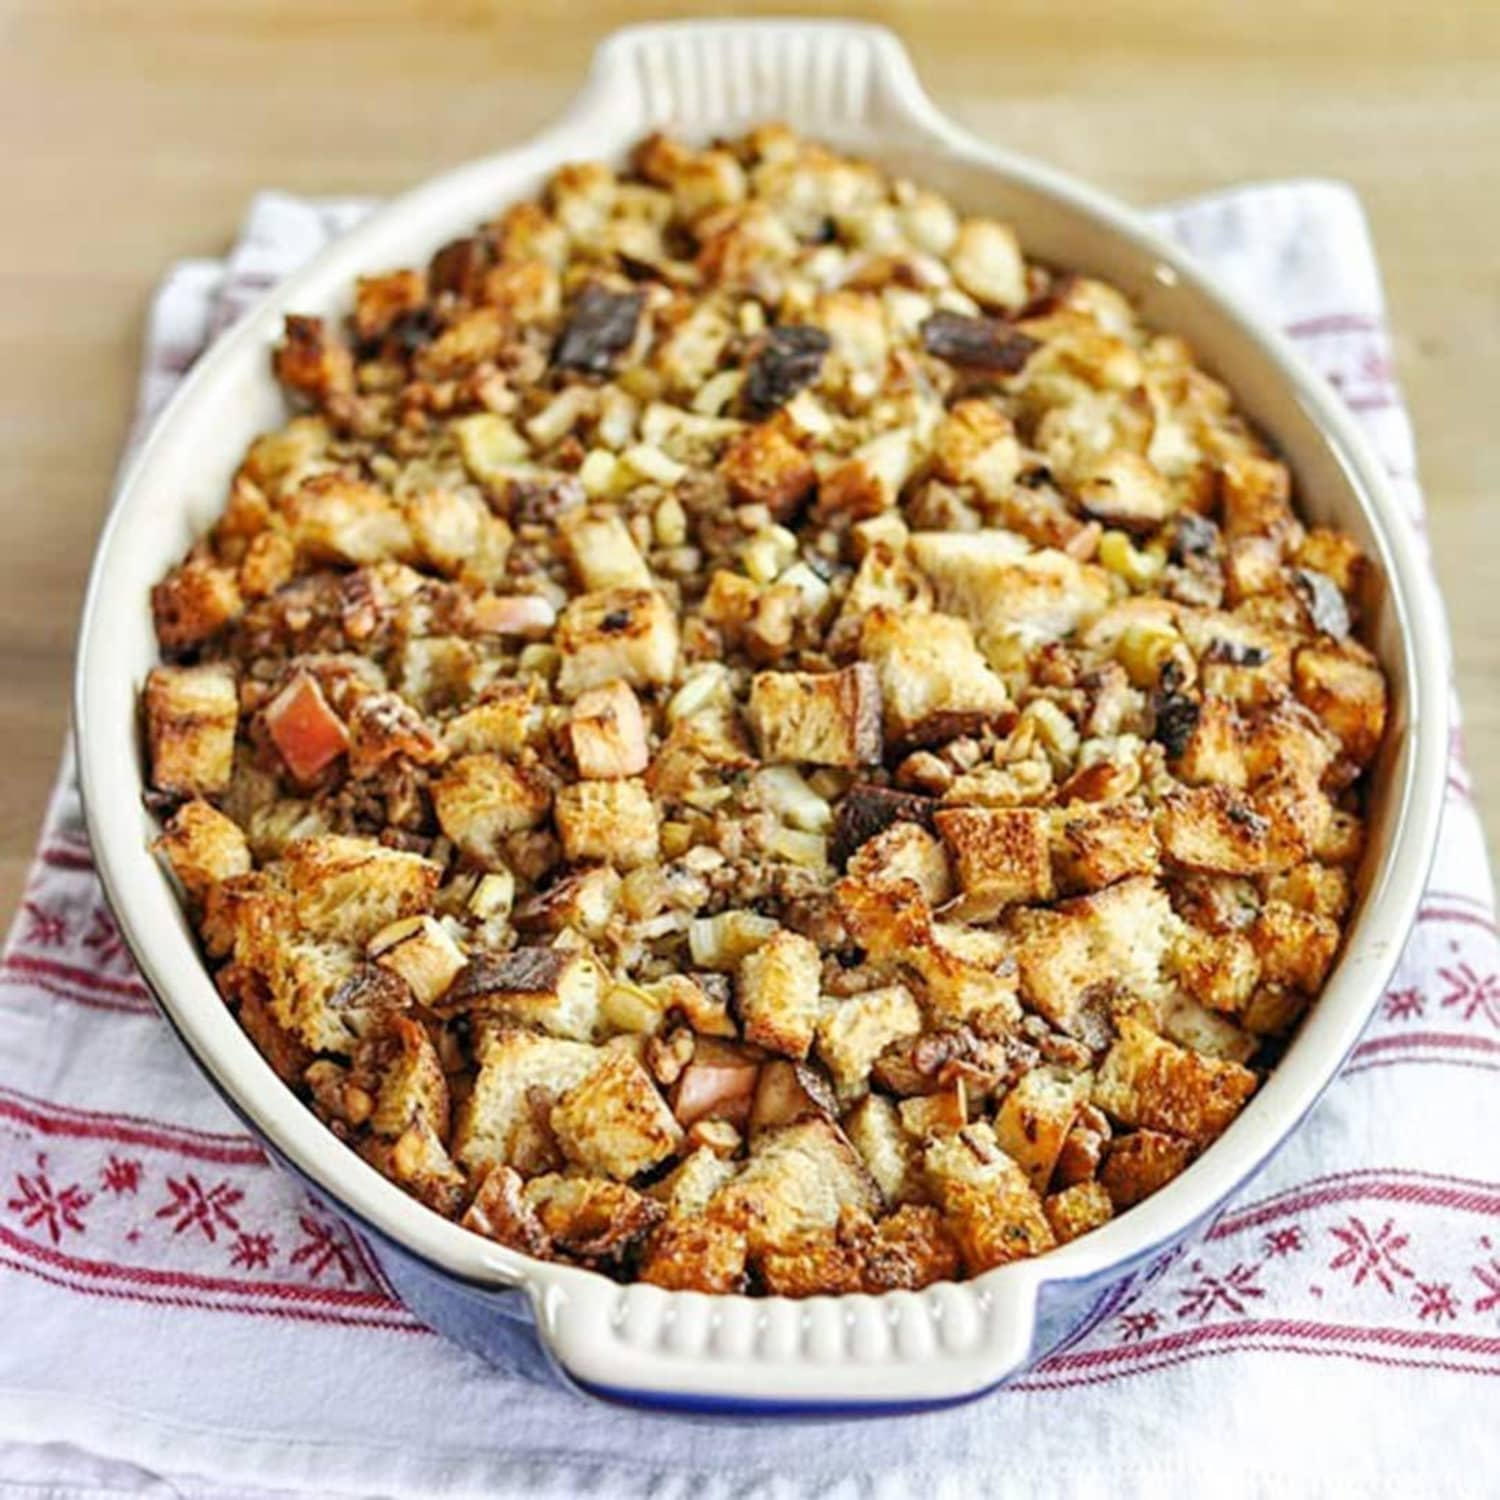 How To Make Bread Stuffing (Dressing) for Thanksgiving